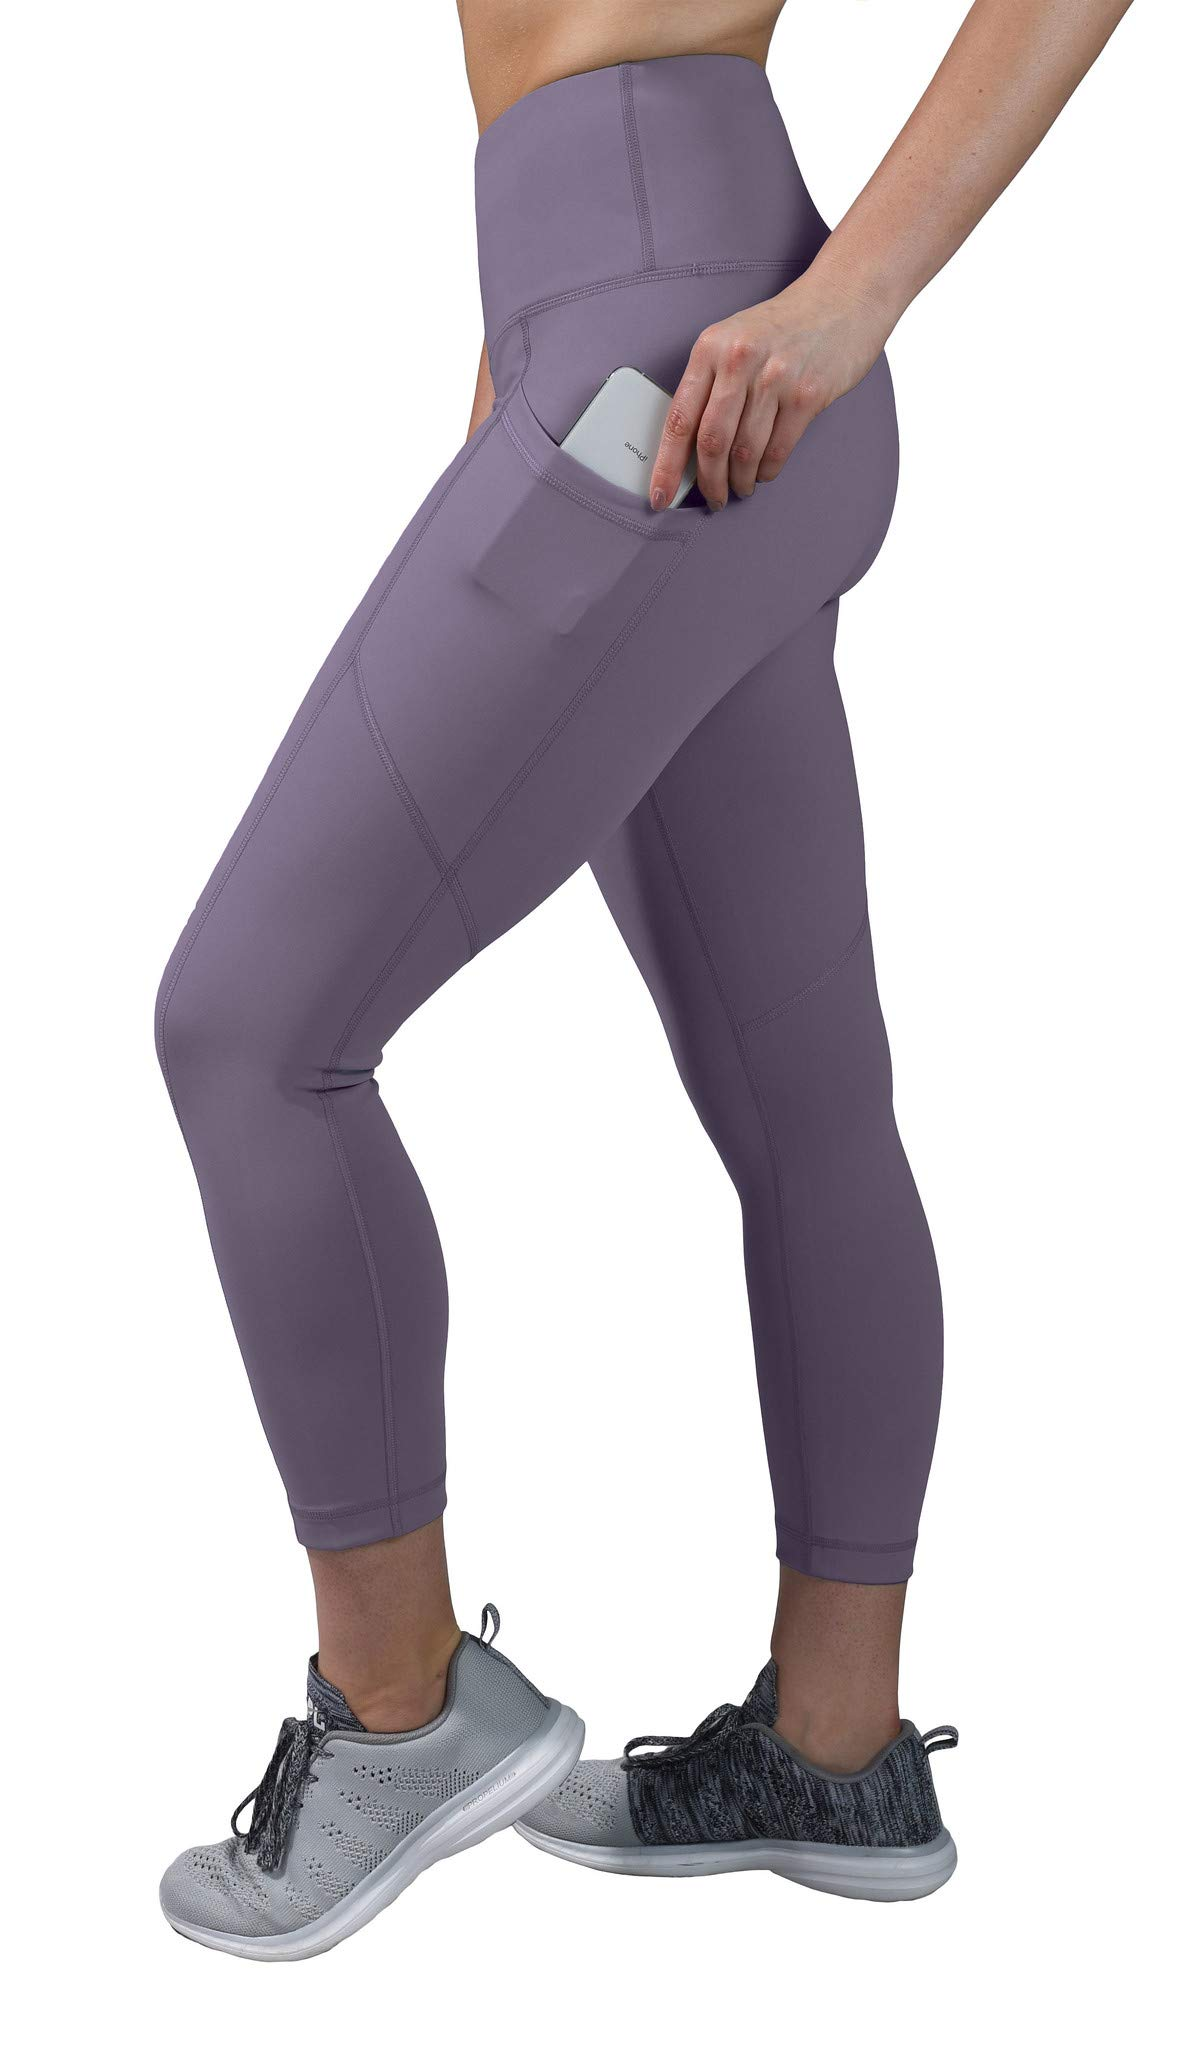 90 Degree By Reflex High Waist Squat Proof Yoga Capri Leggings with Side Phone Pockets - Plum Frost - XS by 90 Degree By Reflex